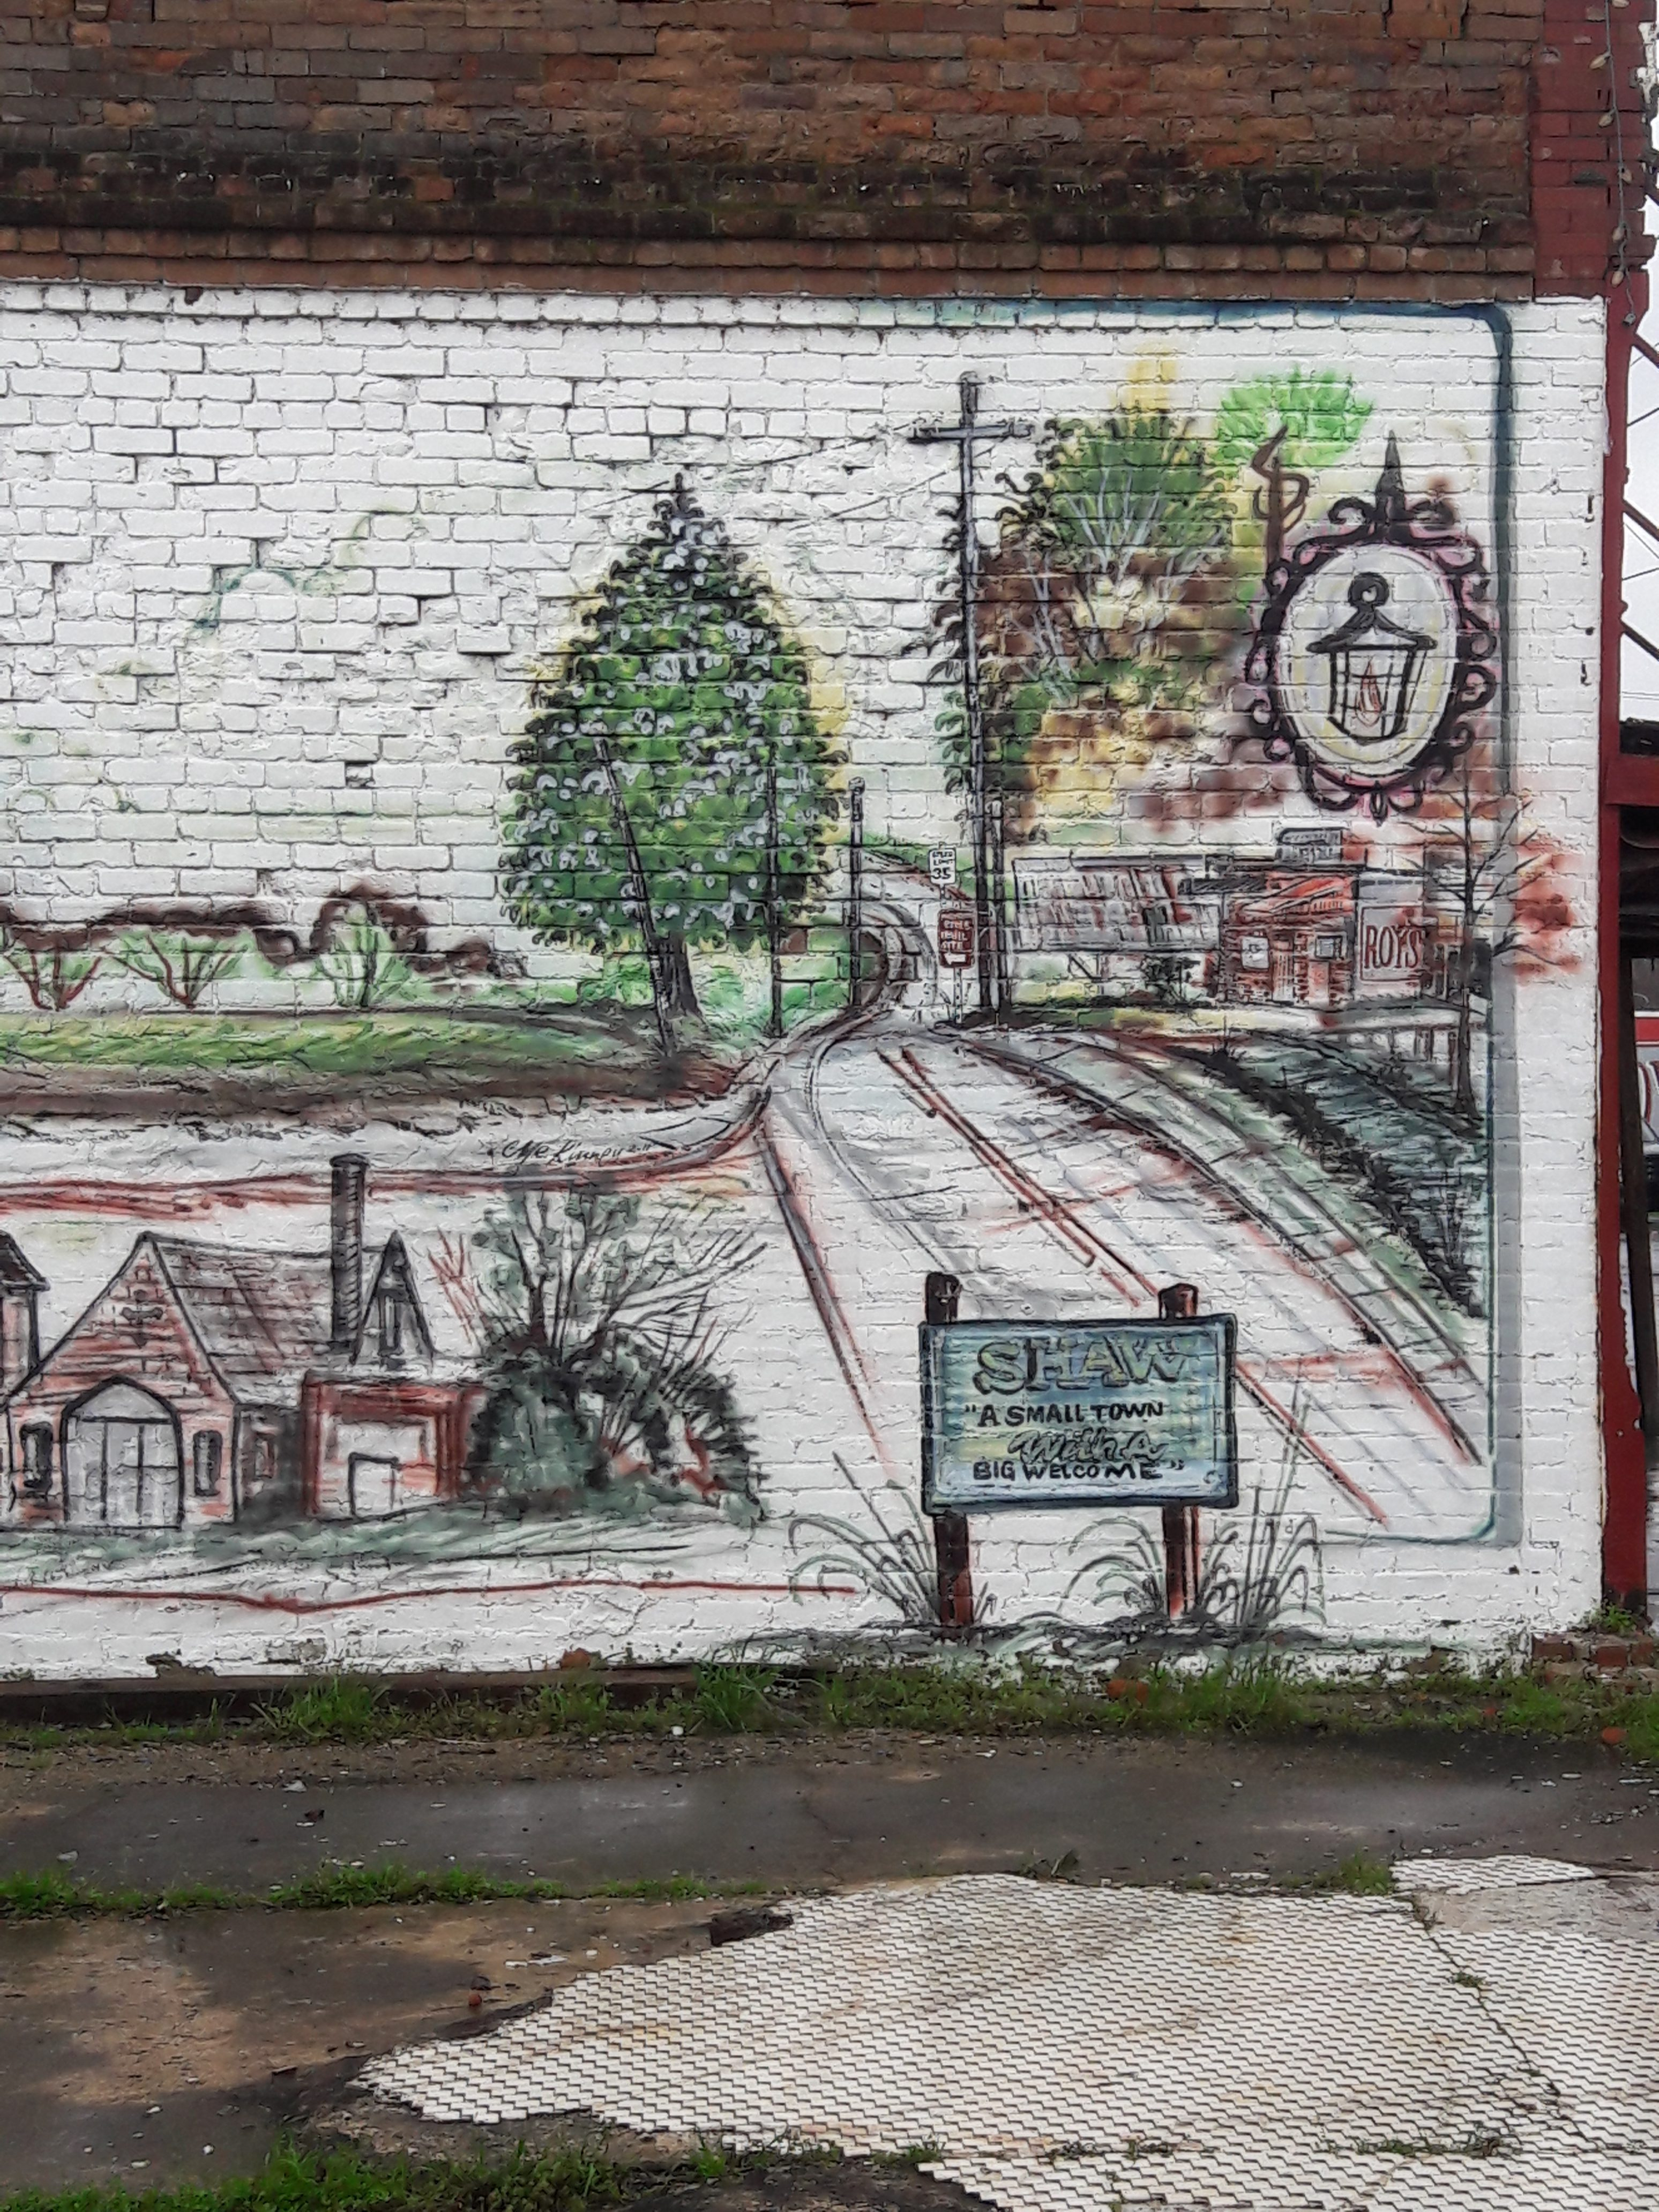 """A mural feautring the town of Shaw, with a lamppost, railroad tracks, businesses, and a church pictured. A sign at the bottom reads: """"Shaw: A Small Town with a Big Welcome."""""""